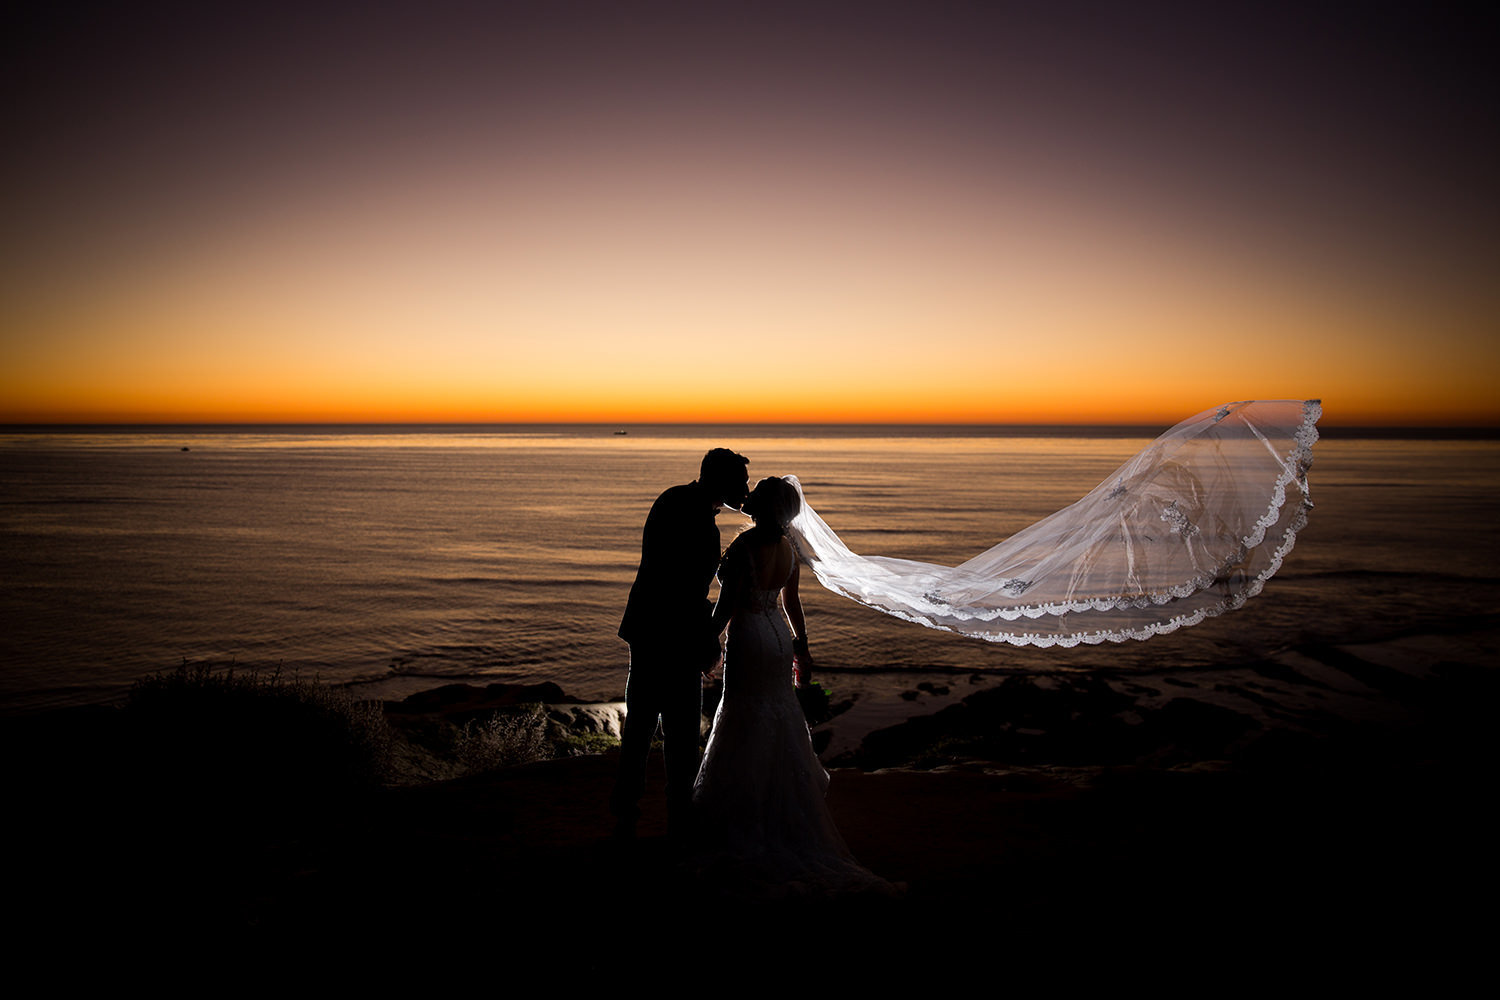 stunning sunset image with long veil on bride